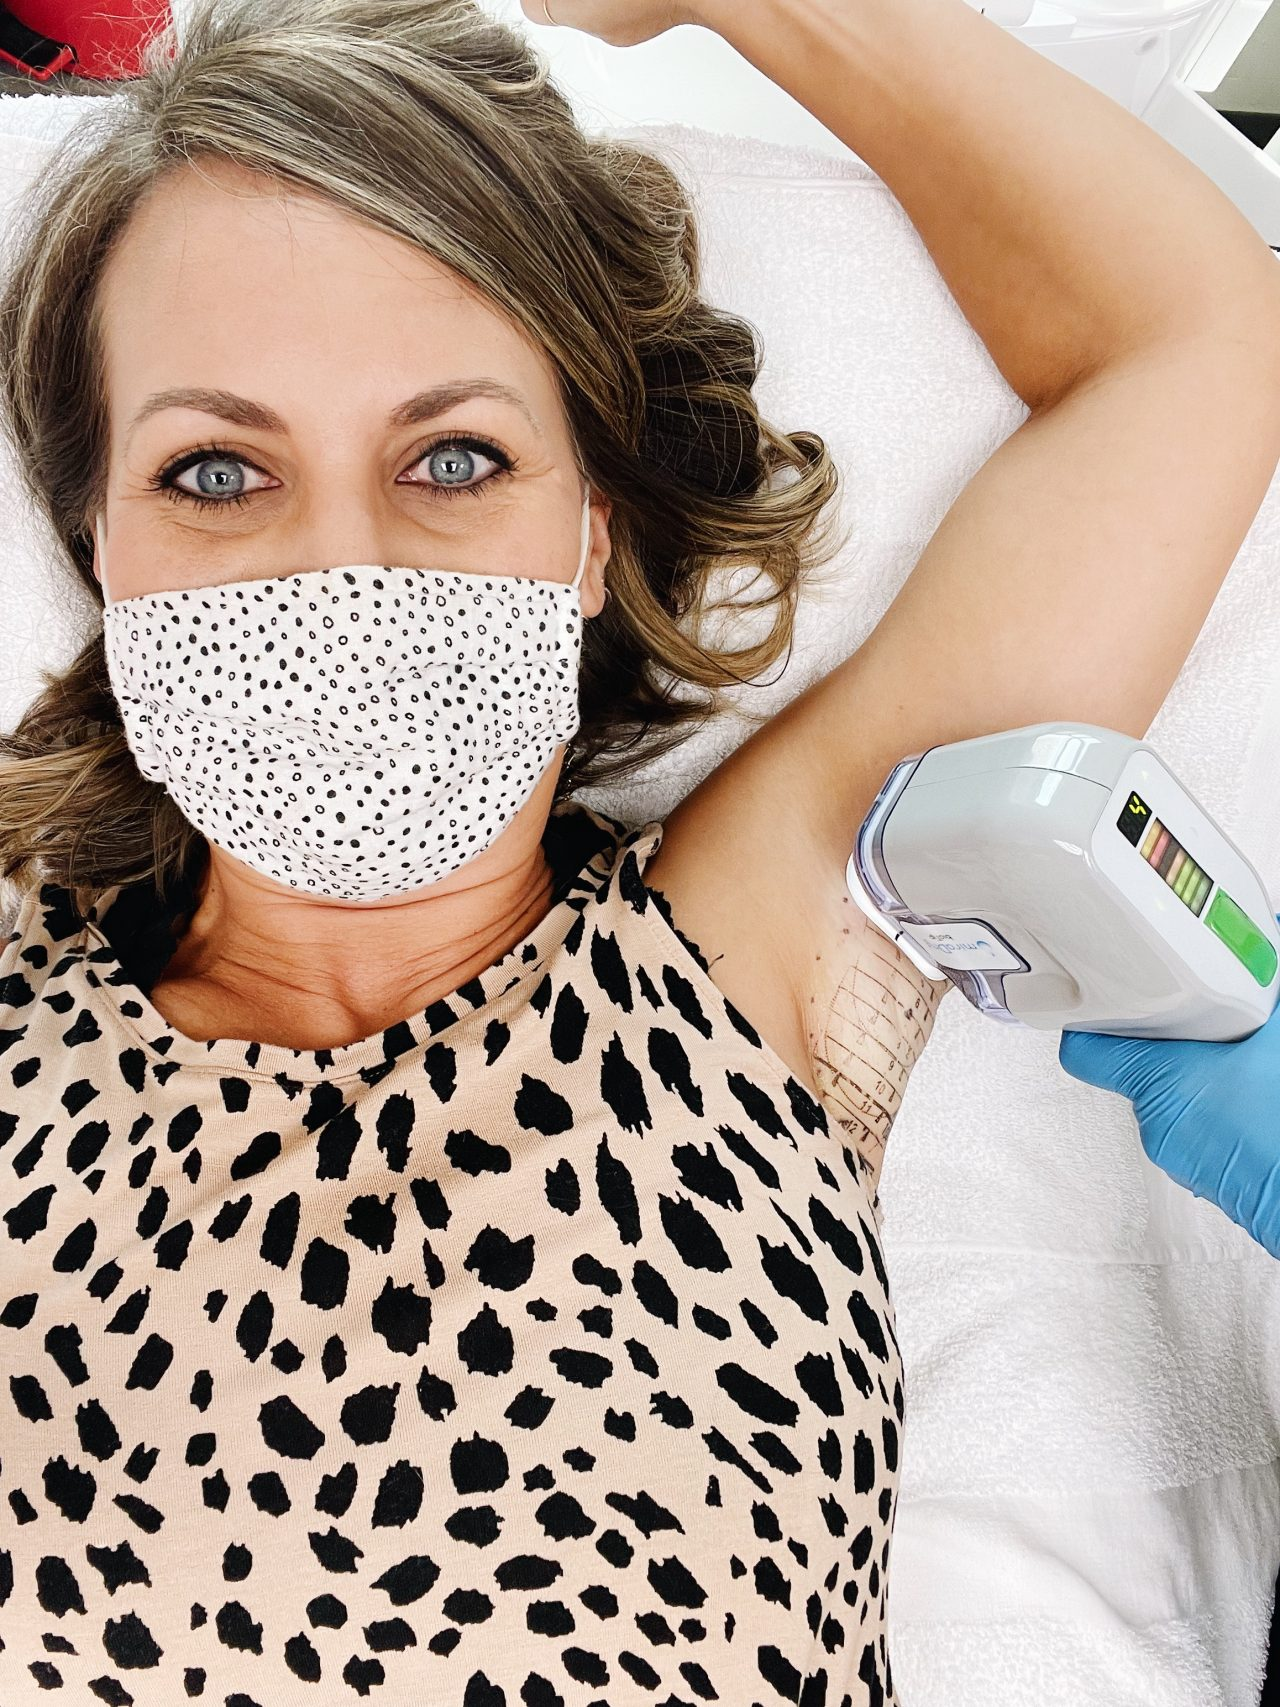 miradry treatment to reduce sweating and underarm odor